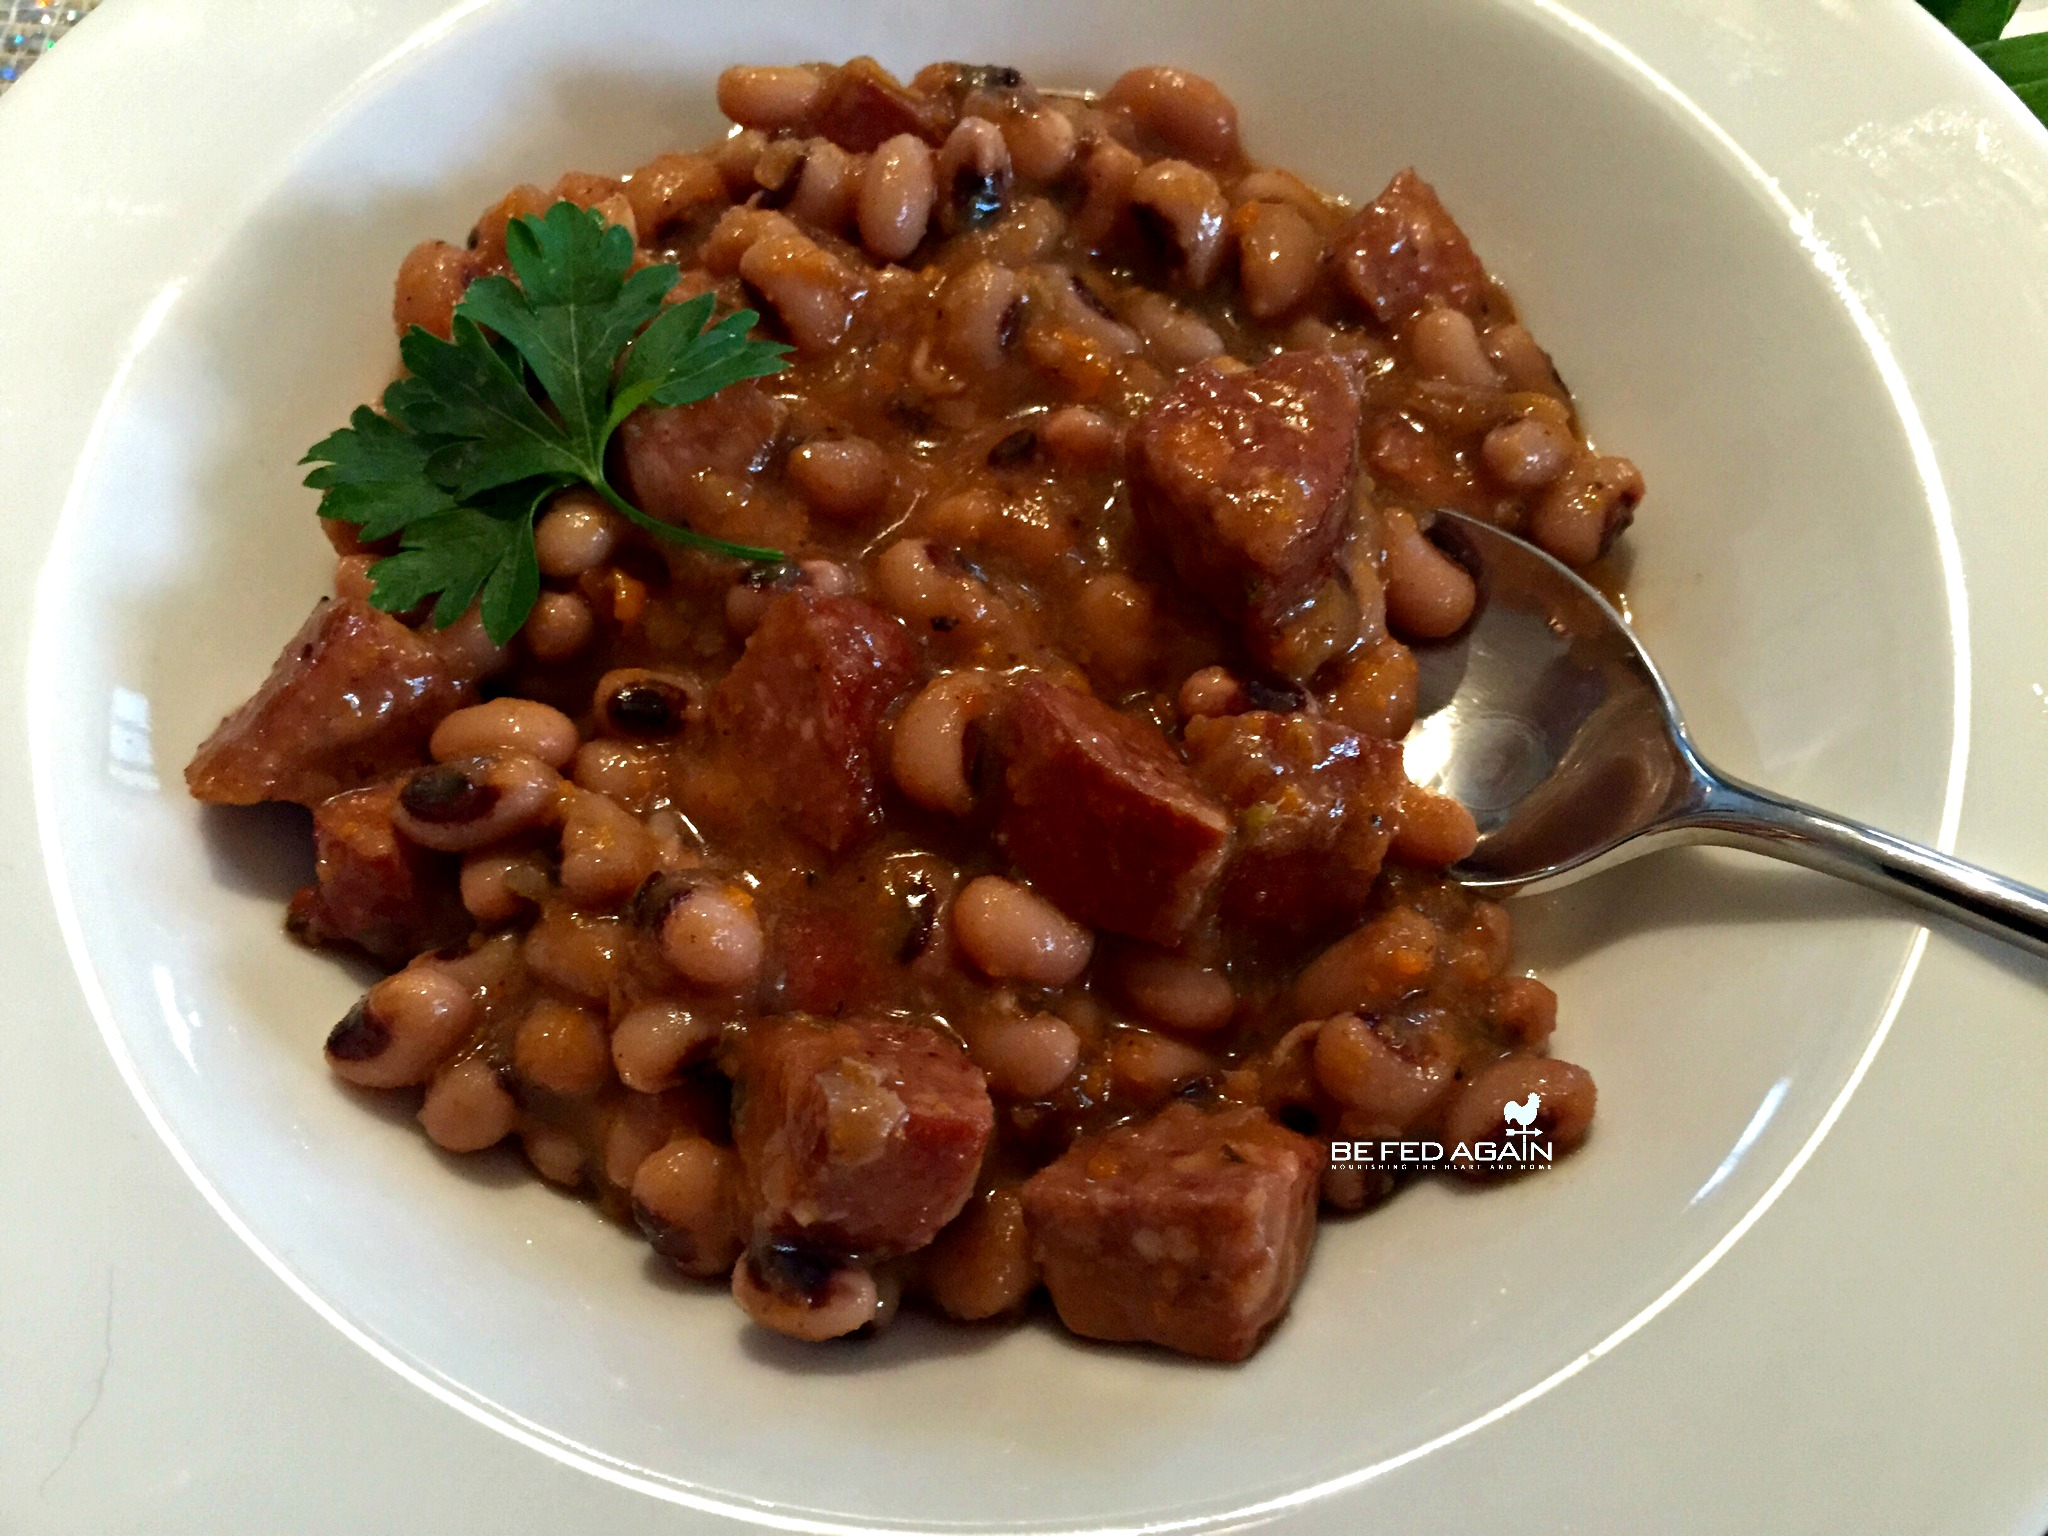 Black Eyed Peas with Chorizo Sausage